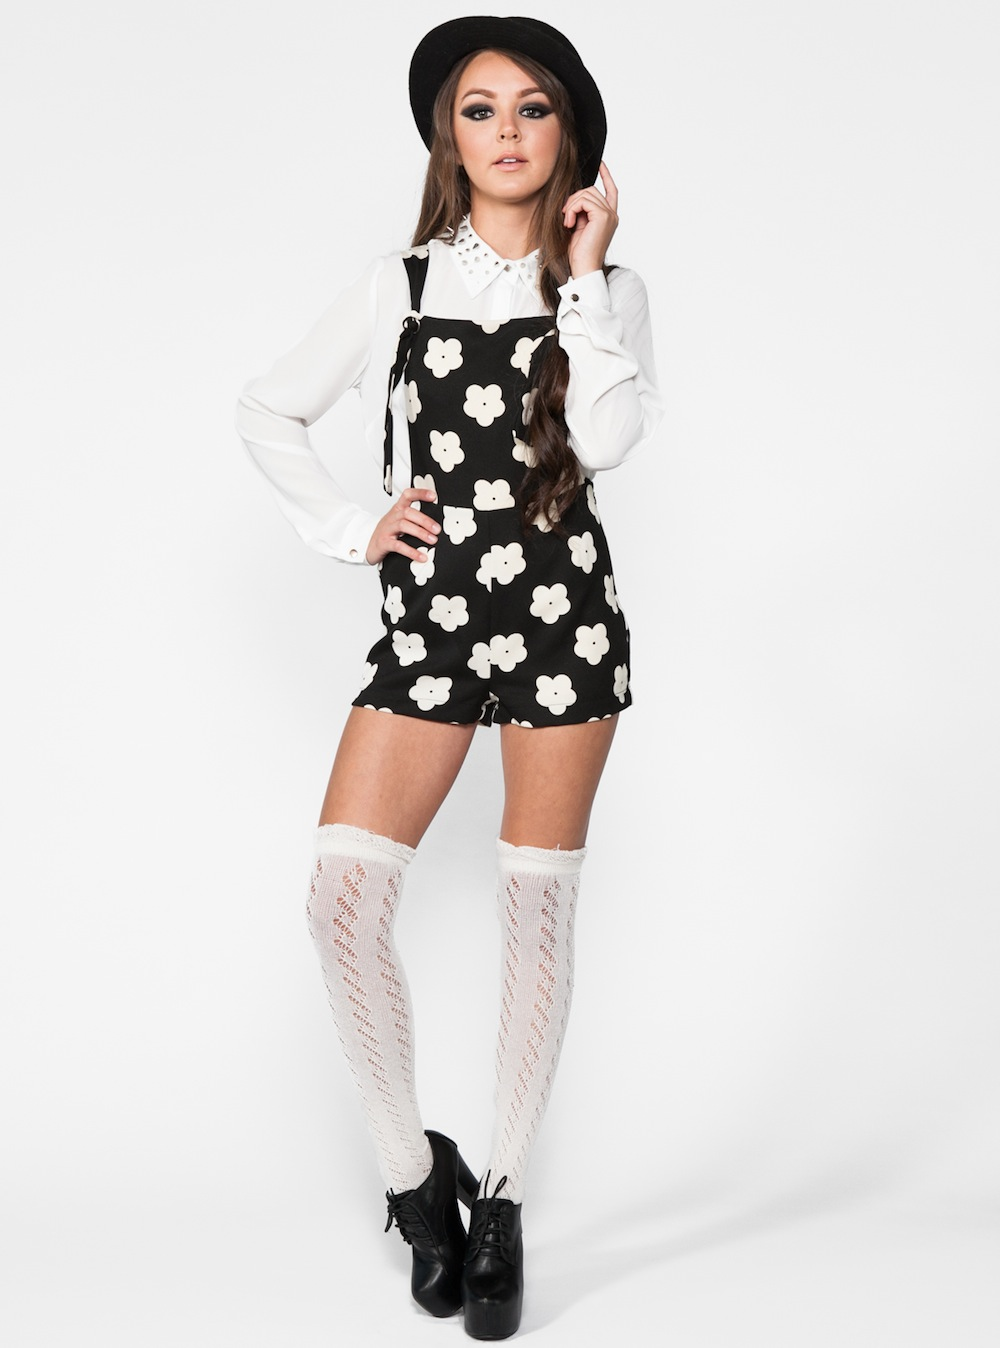 Black Shorts - Black and White Daisy Overalls | UsTrendy